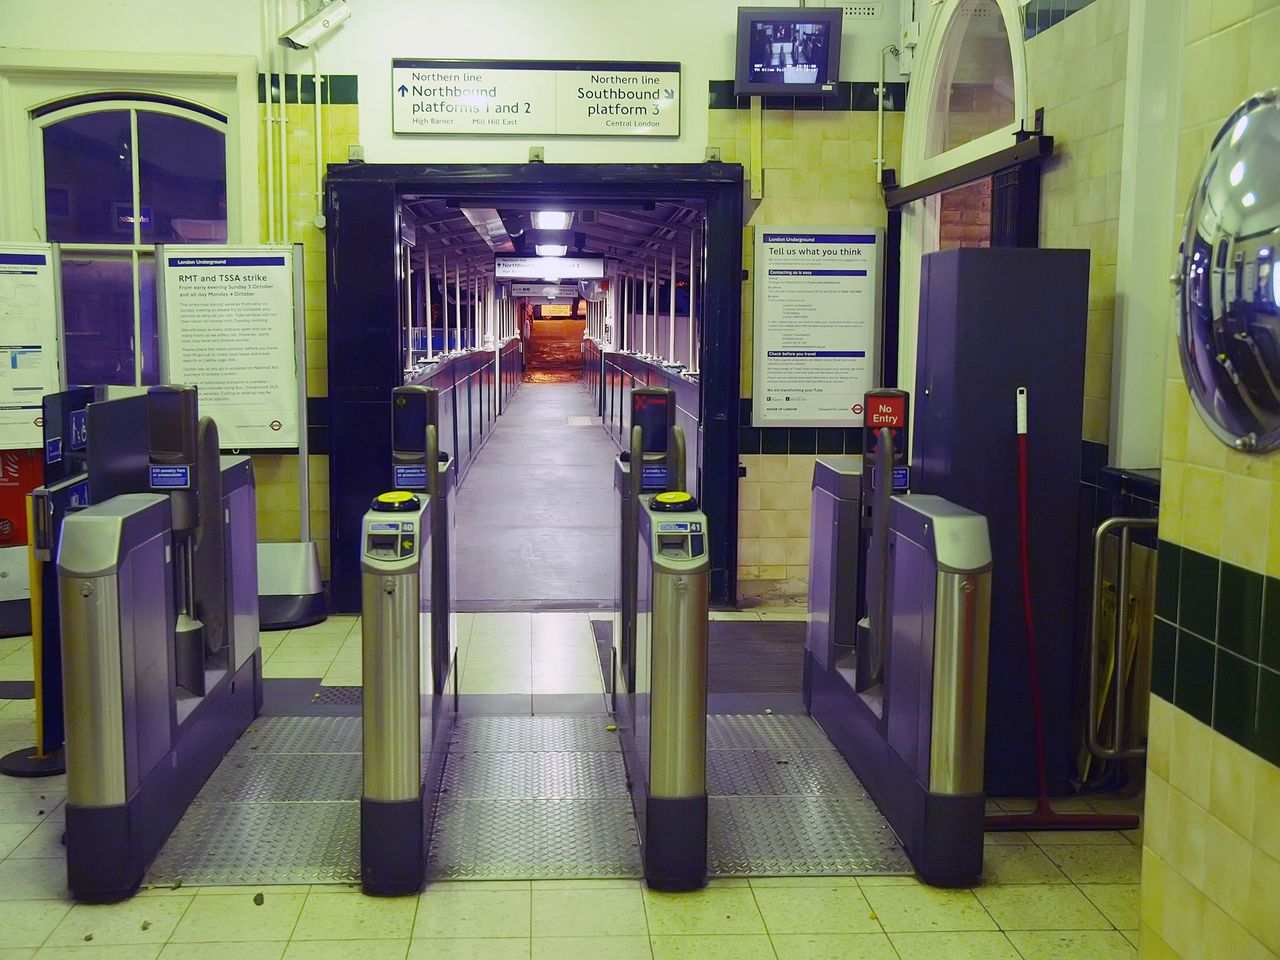 A deserted entrance to the Finchley Central Tube station, North London, on October 3, 2010 after the start of a 24 hour strike on the London underground. AFP PHOTO/MAX NASH